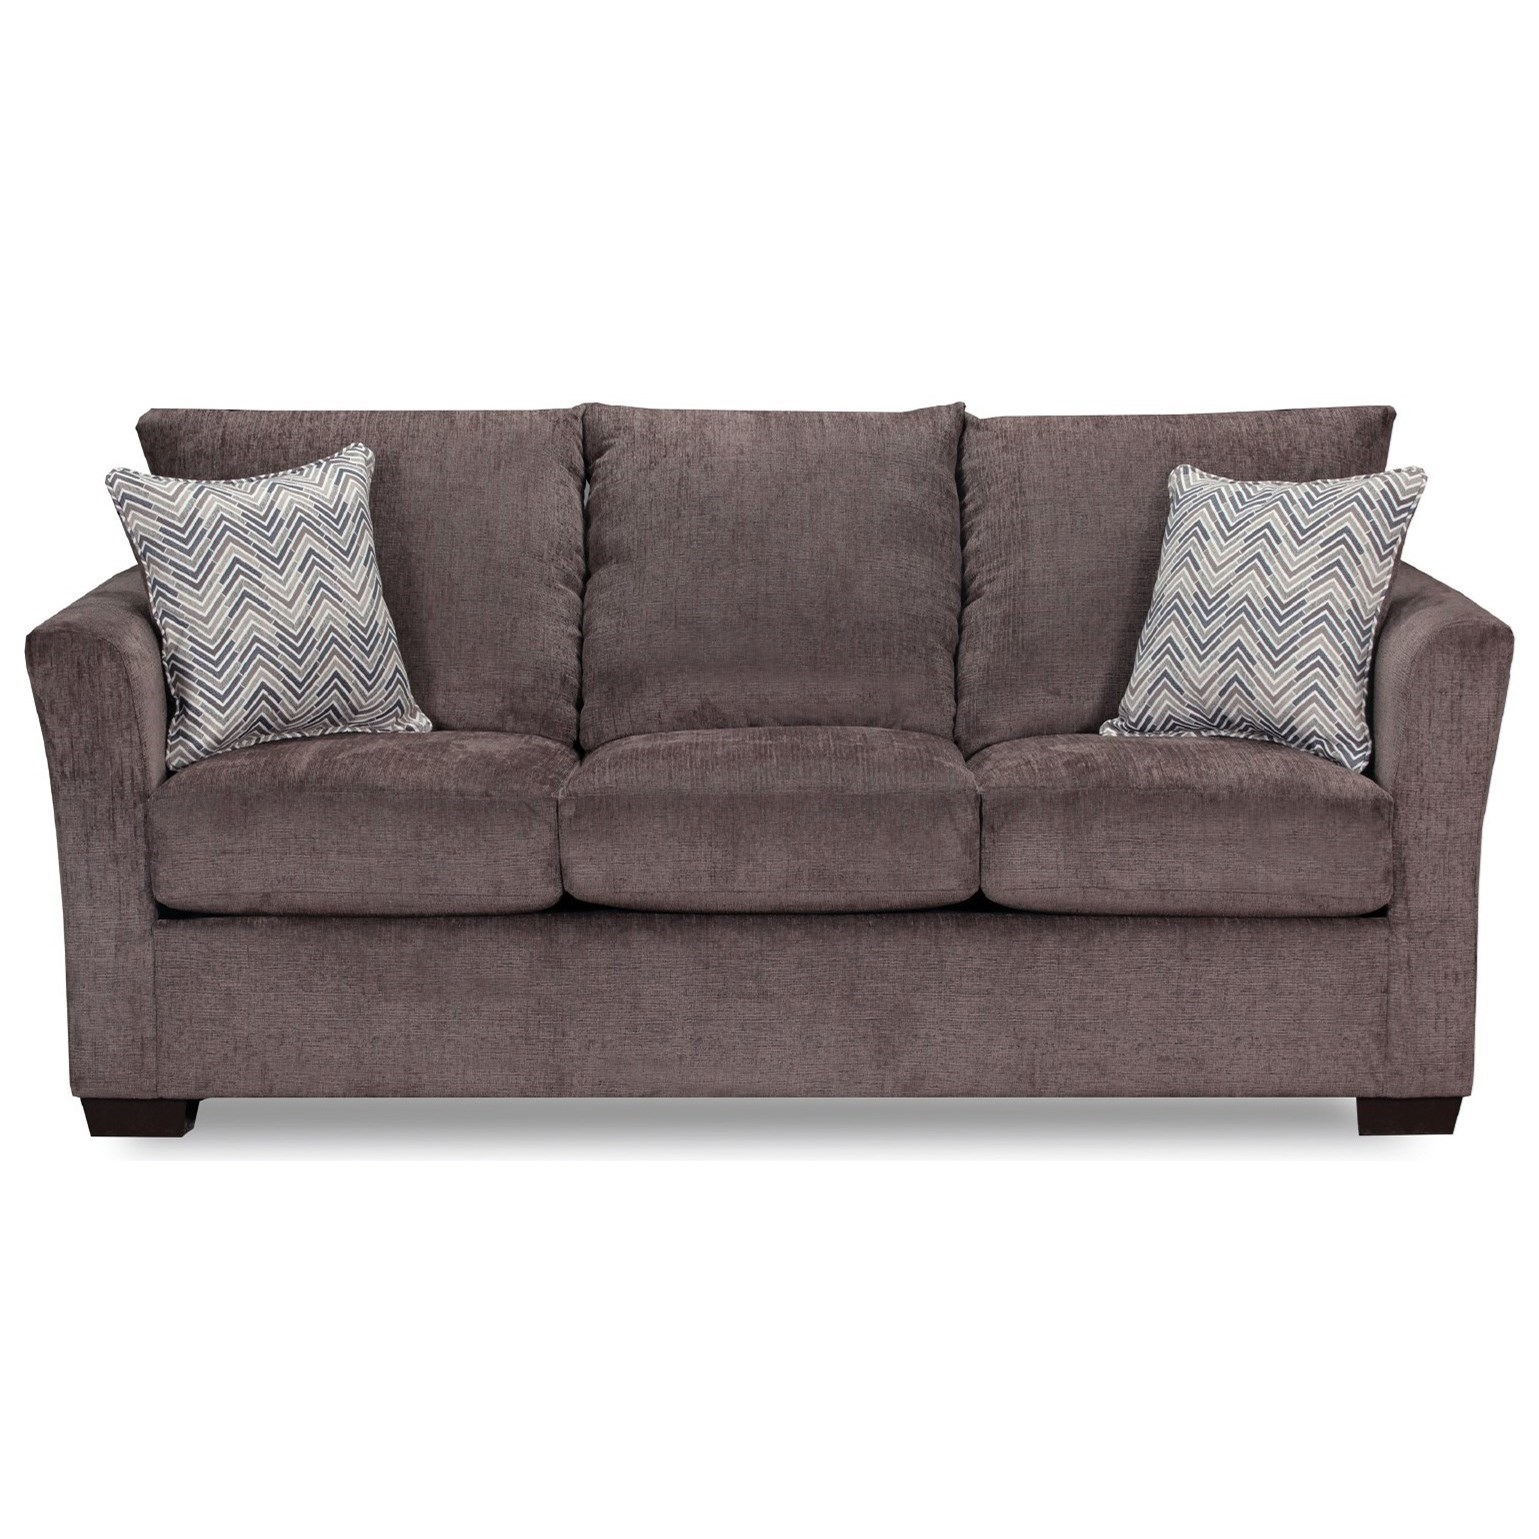 Transitional Queen Sleeper Sofa